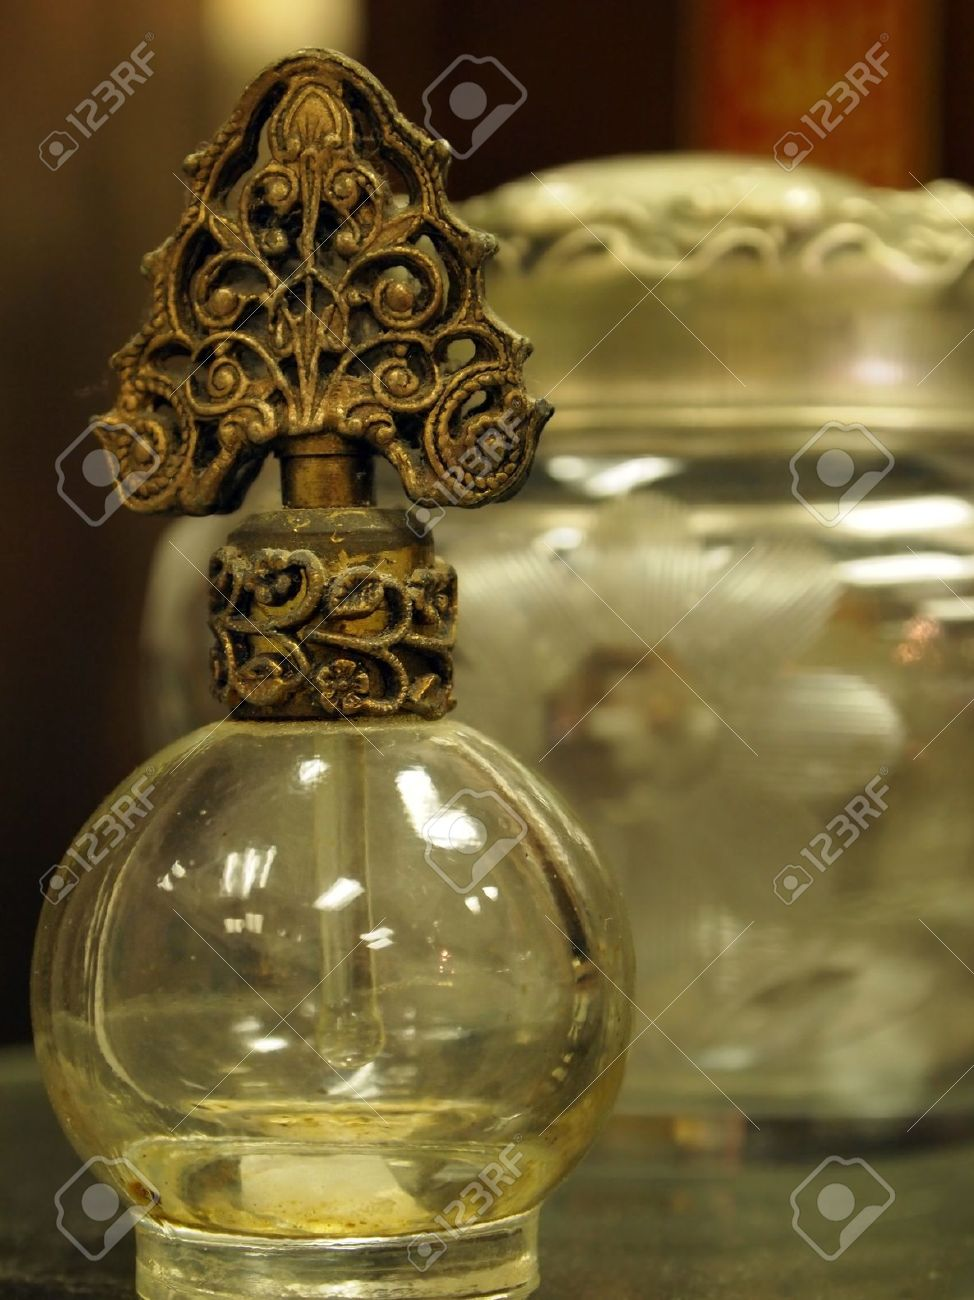 A Small Collection Of Fancy Vintage Perfumes Bottles Stock Photo